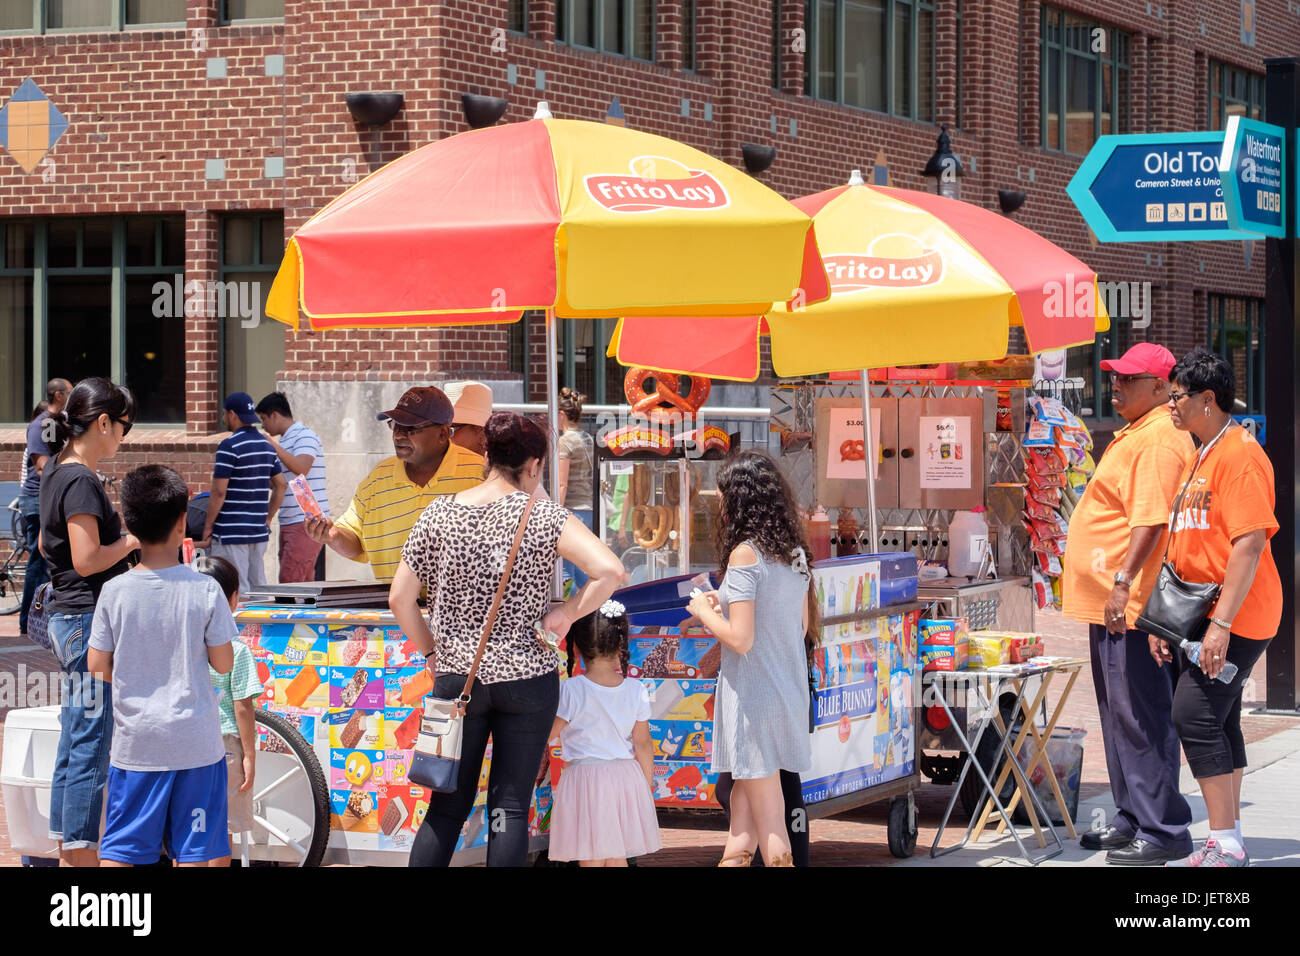 Ice cream vendor and customers on a hot summer day in Alexandria, VA - Stock Image